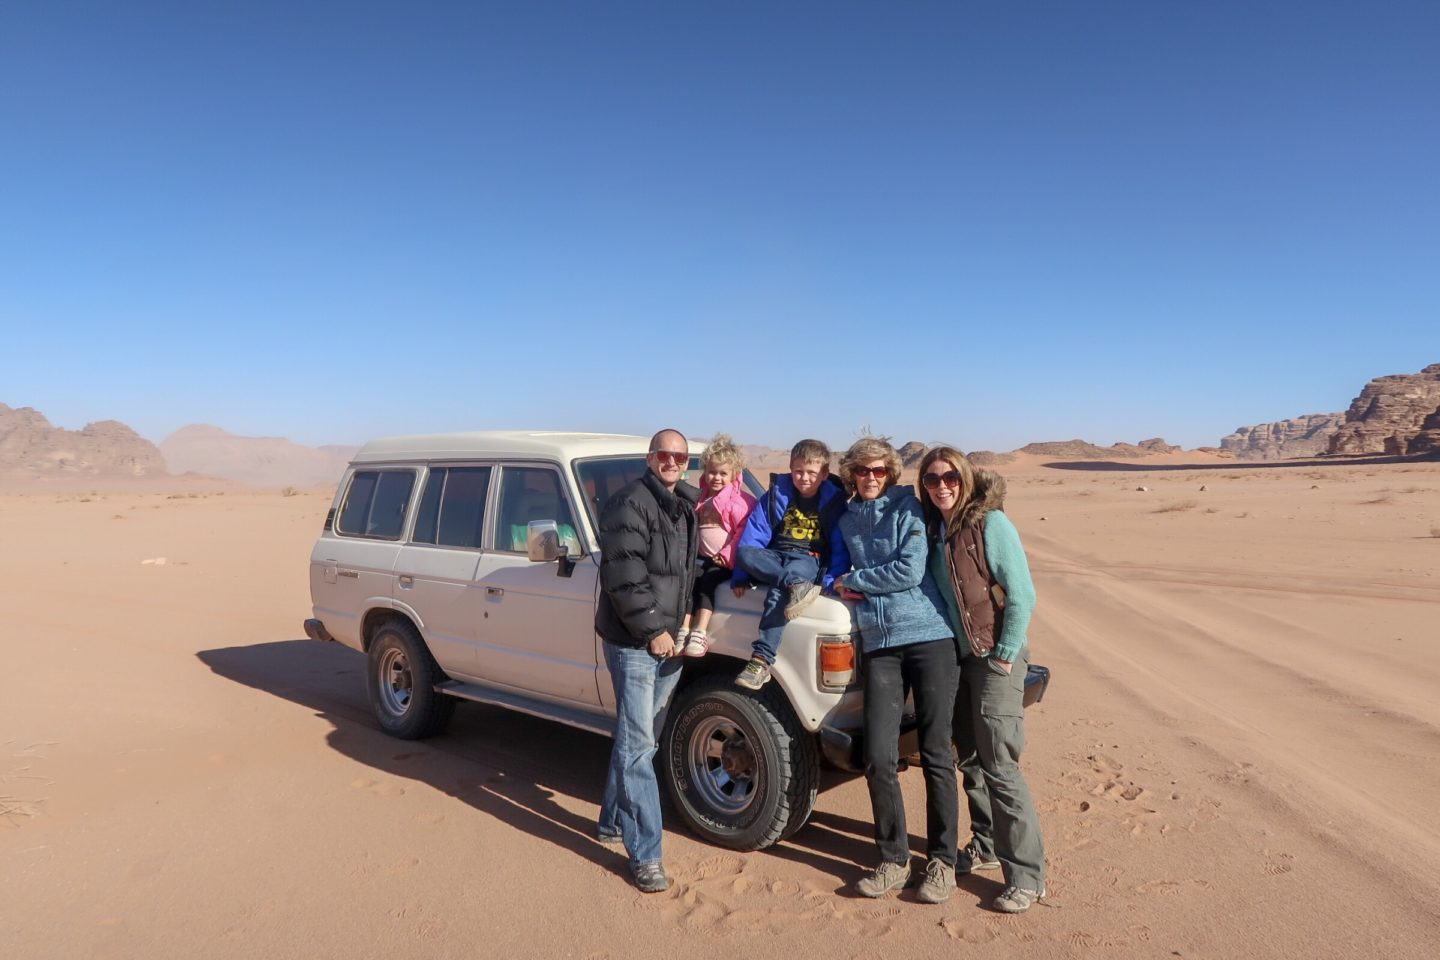 Wanderlust family photos with our Land Cruiser touring jeep - Jordan Adventures Part 4 - Wadi Rum